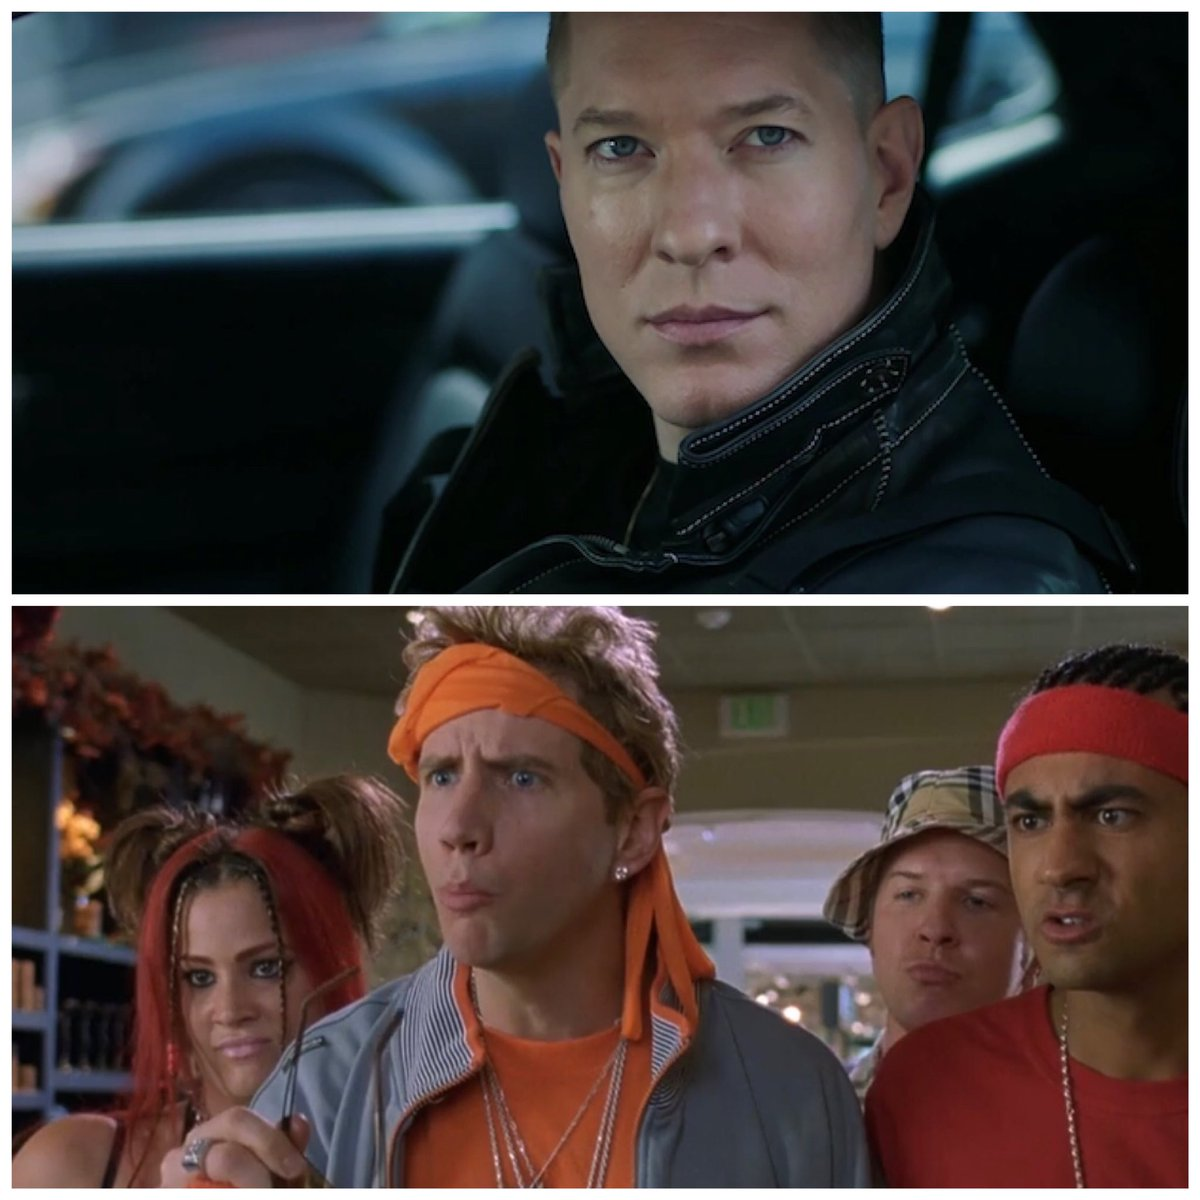 I was watching the classic movie: Malibu most wanted & guess who came to mind. That's TOMMY from #PowerBook2 #PowerTV 😂🤣😂🙂#MalibuMostWanted